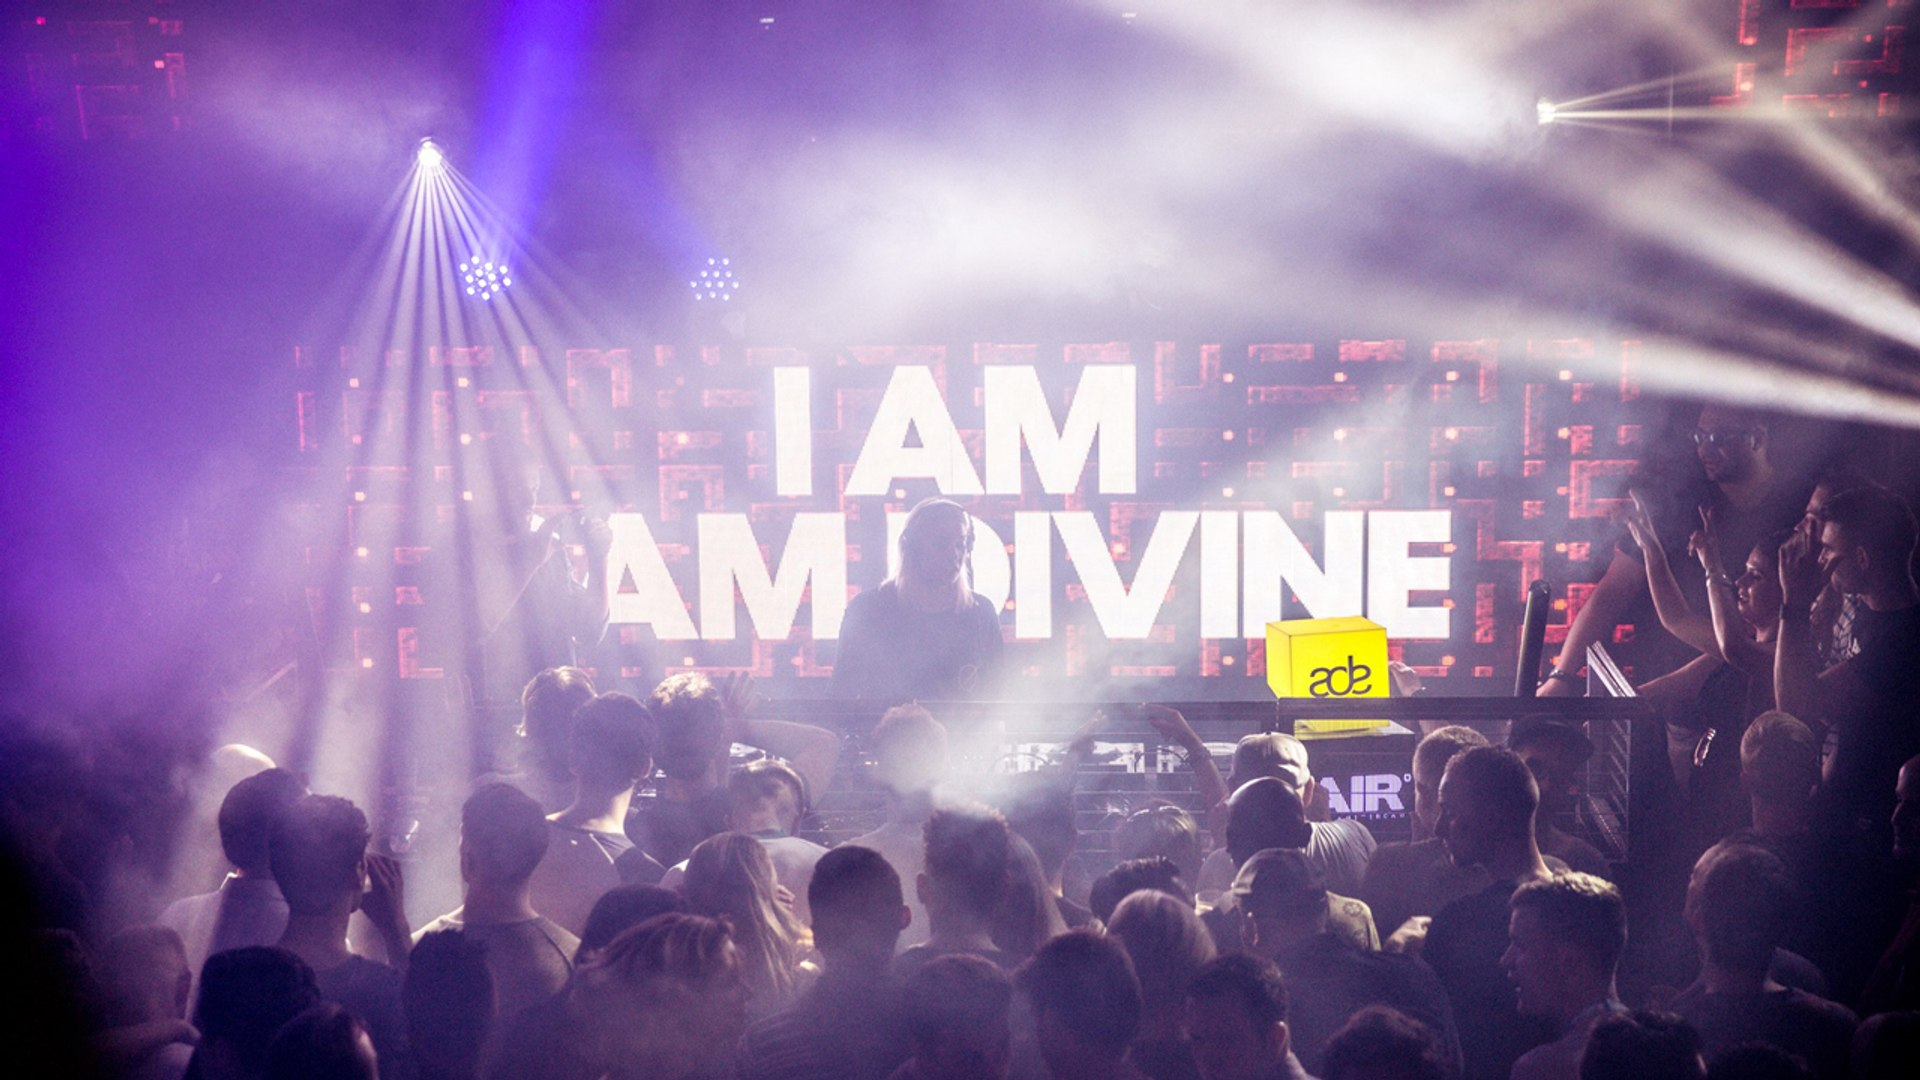 Sam Divine @ Defected in the House ADE, AIR Amsterdam (Netherlands)